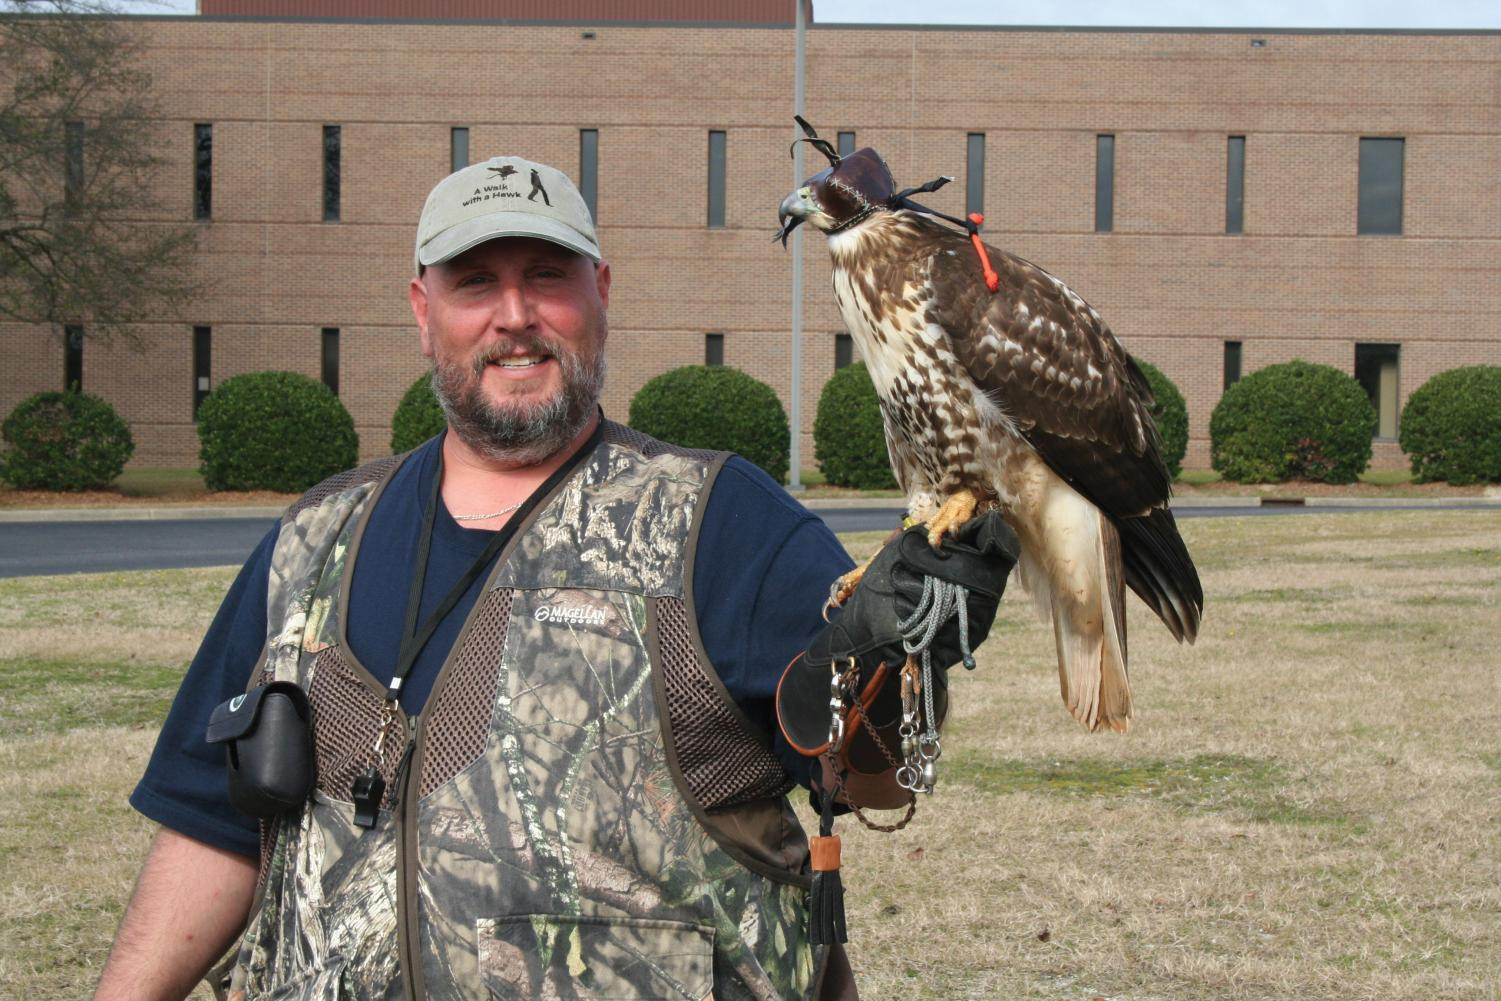 Joel King poses with his juvenile red-tailed hawk, Stella.